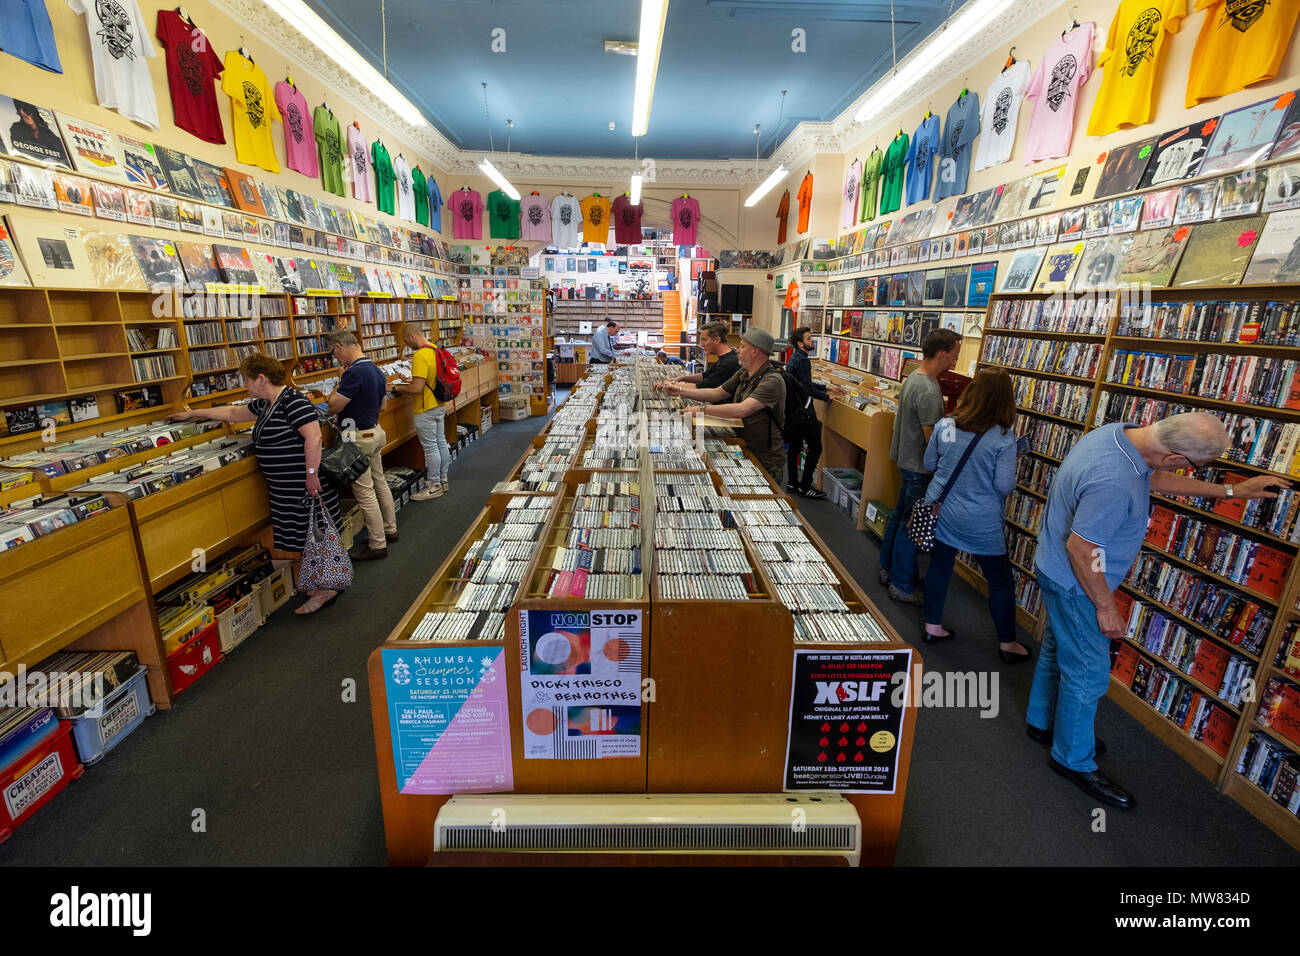 Interior of Groucho's second hand record shop in Dundee, Scotland, UK - Stock Image